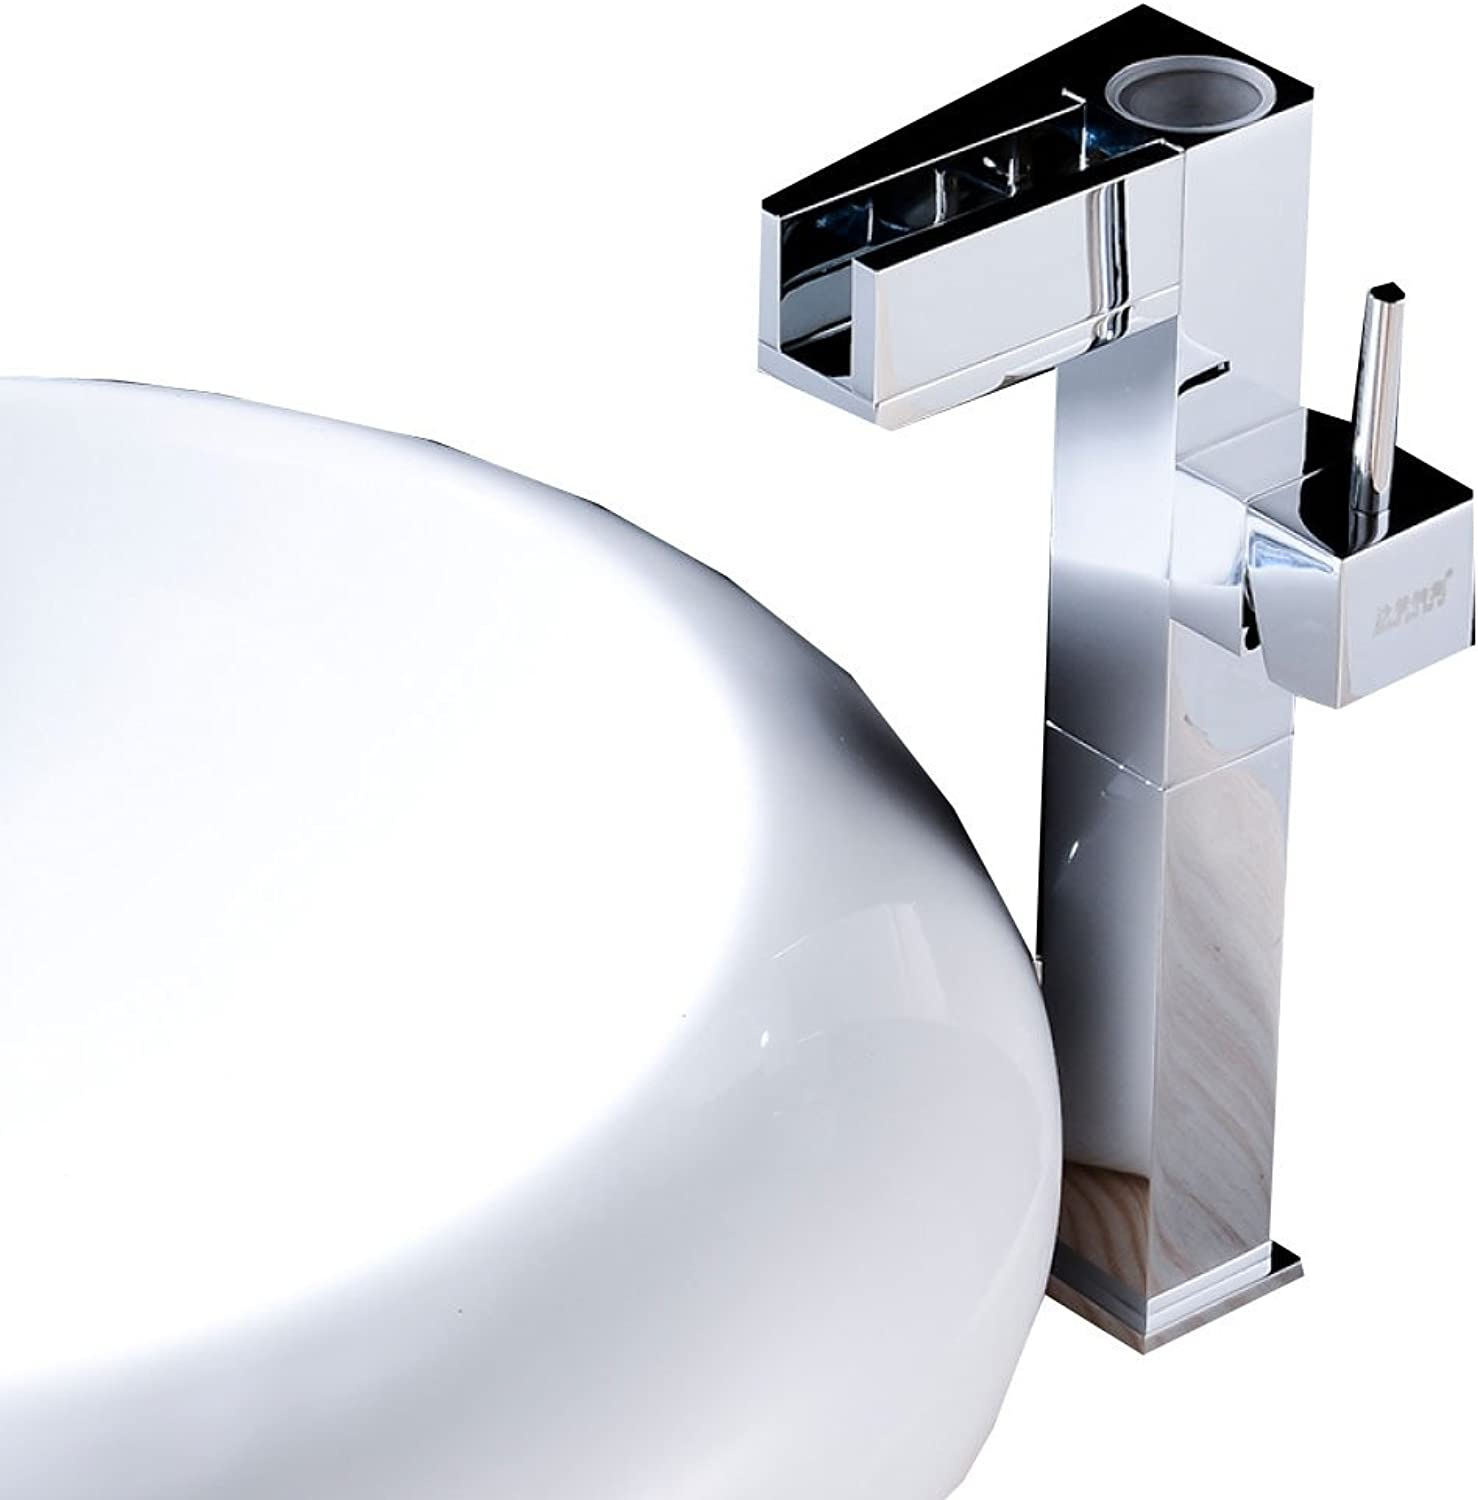 ANHPI-Tap LED Temperature Control Faucet Washbasin Washbasin Above Counter Basin Copper Hot And Cold Waterfall Basin Faucet,B